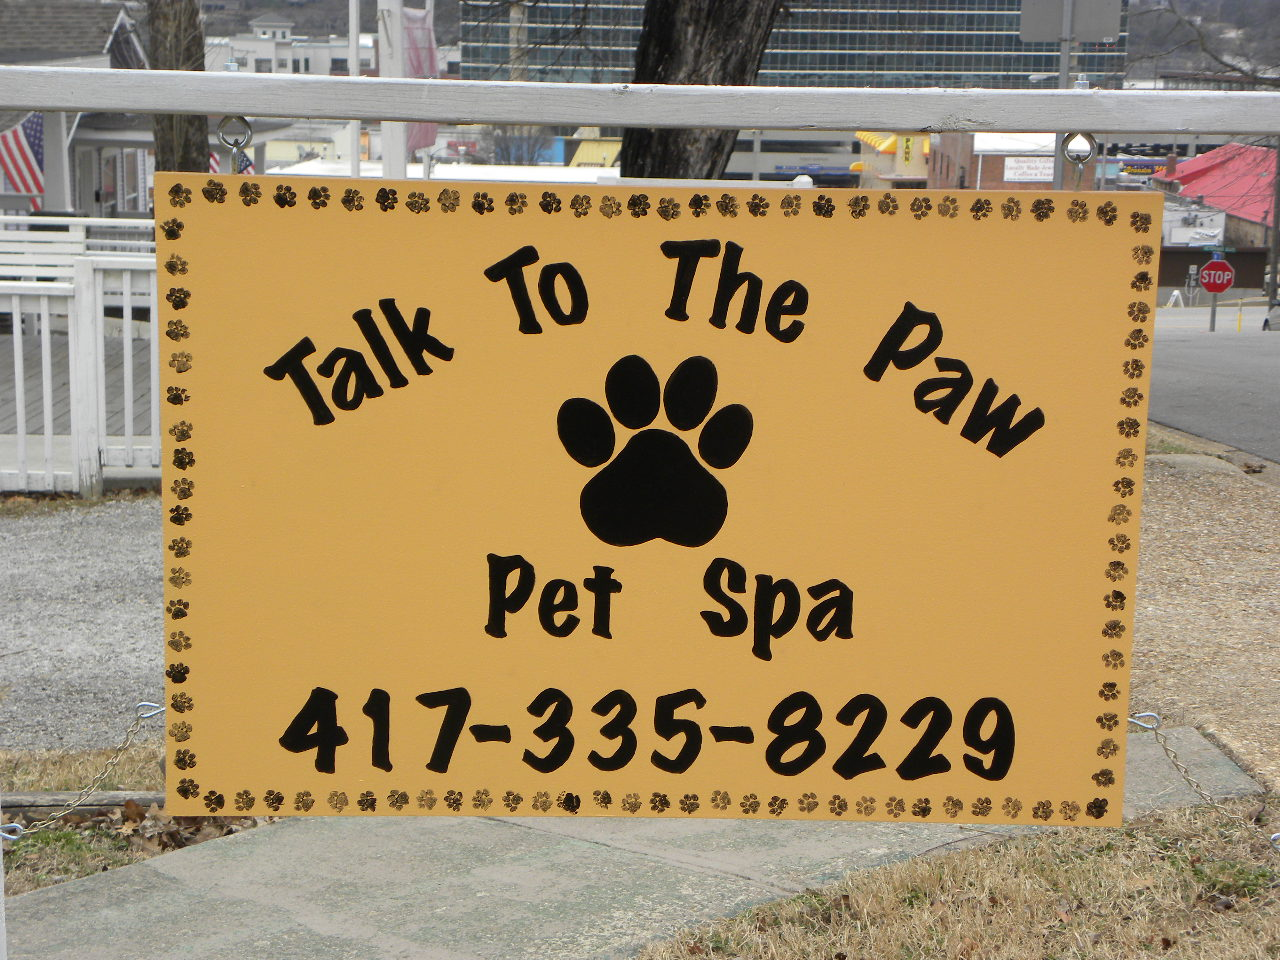 Downtown branson talk to the paw pet spa for 417 salon downtown